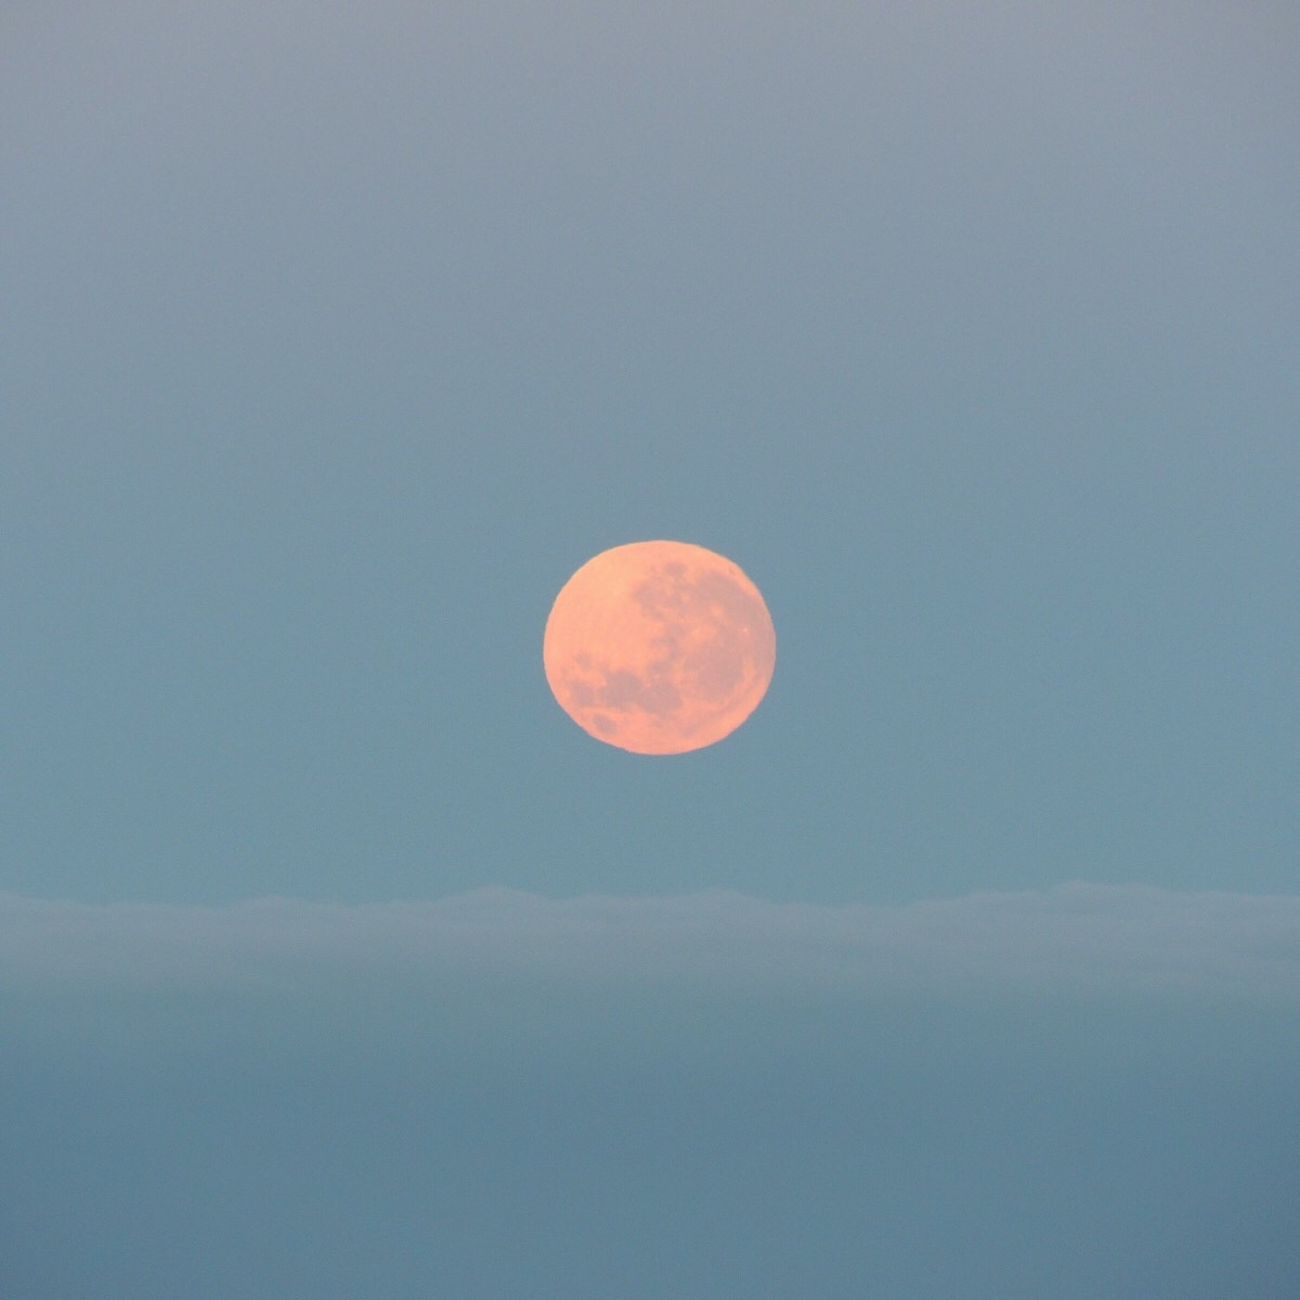 Good Morning Moon And Sea Full Moon In The Morning Moon Shot Moonset Moon_collection Super Luna Moon_of_the_day Moon_lovers From My Window Capture The Moment